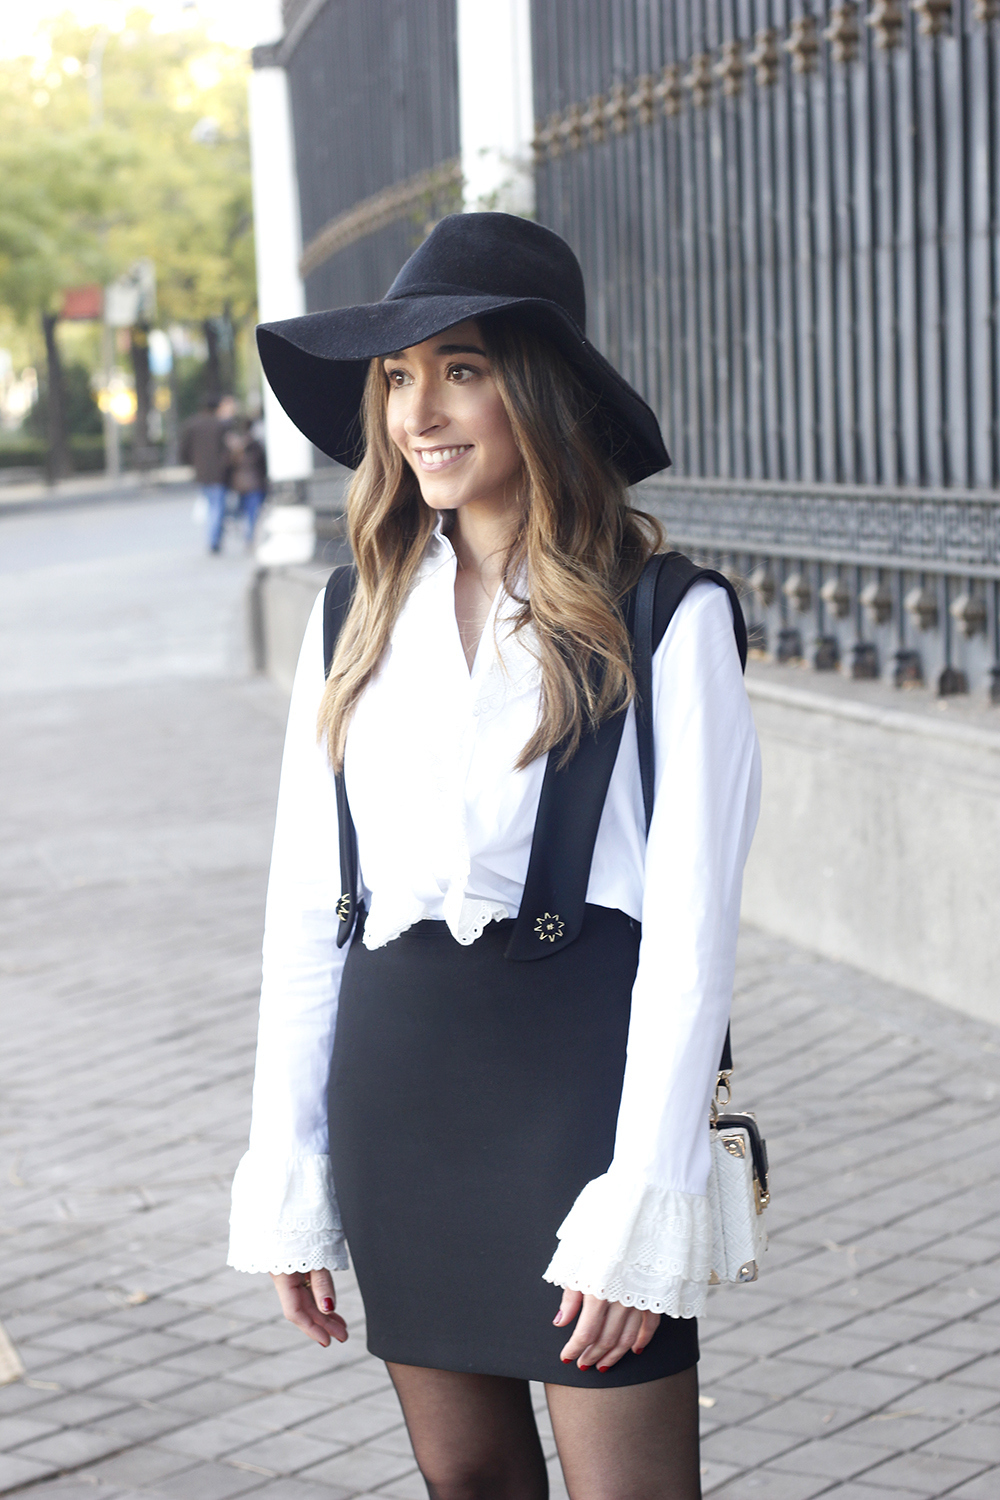 black skirt white shirt black and white outfit trend inspiration hat style fall look blanco y negro14